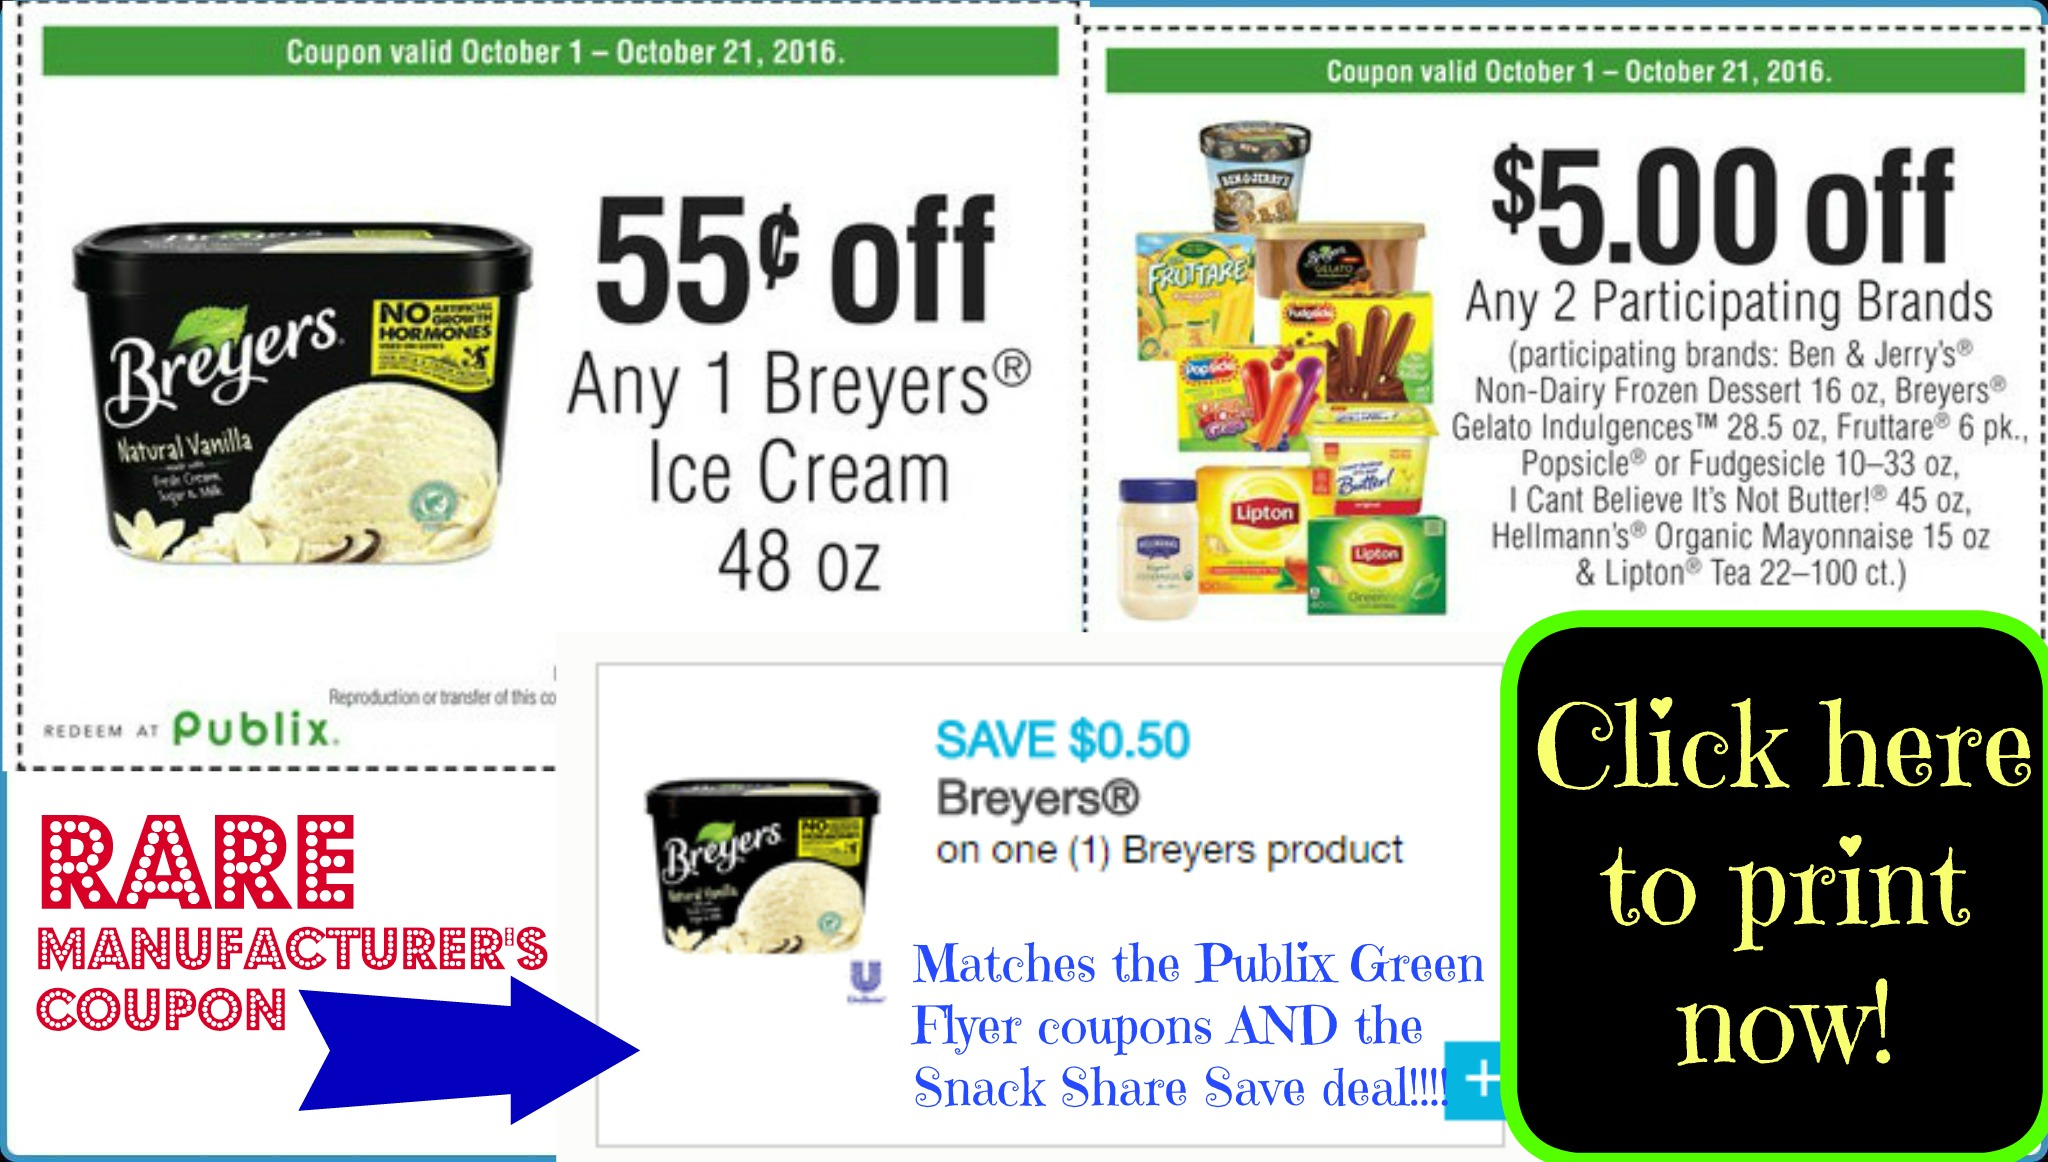 photo about Breyers Ice Cream Coupons Printable titled Tremendous Uncommon Breyers Ice Product Coupon~ Simply click Below In direction of PRINT